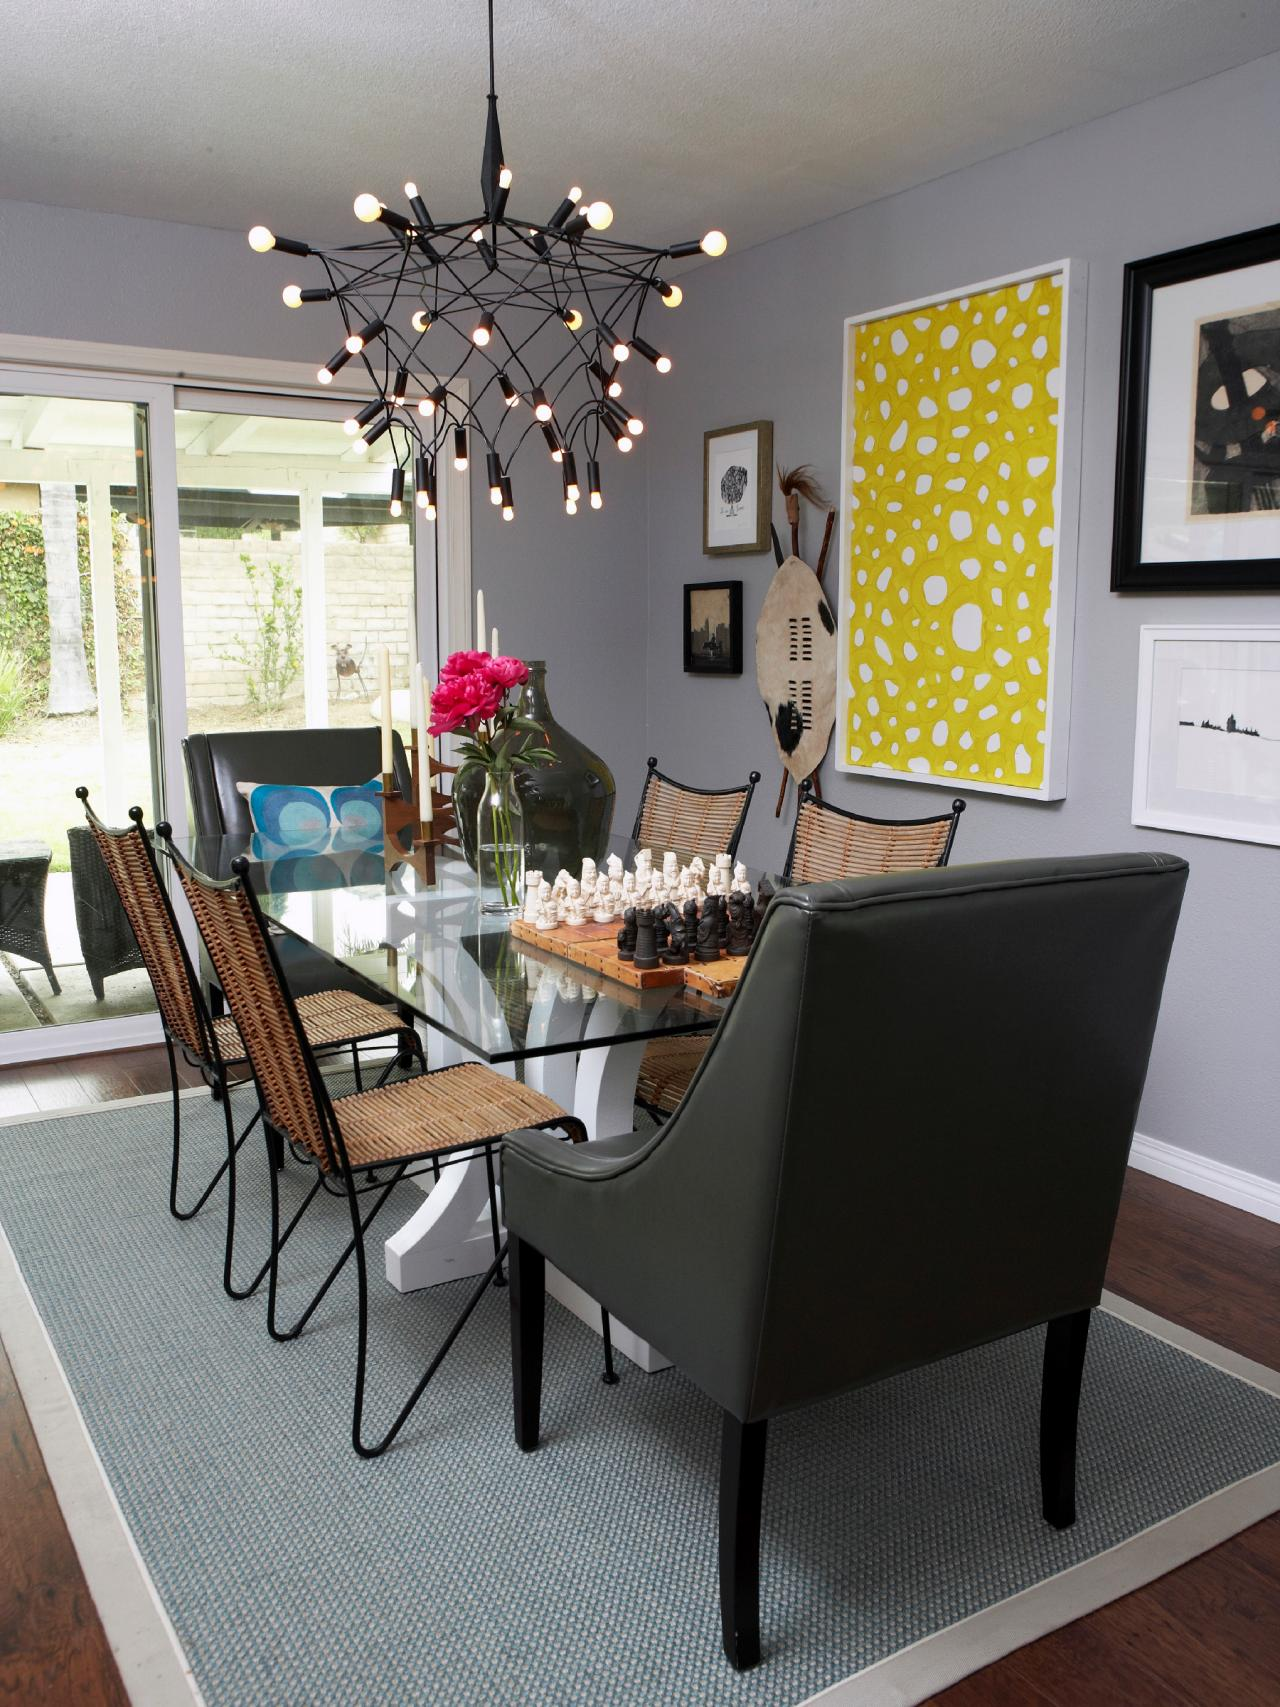 Eclectic Dining Room With Unique Chandelier